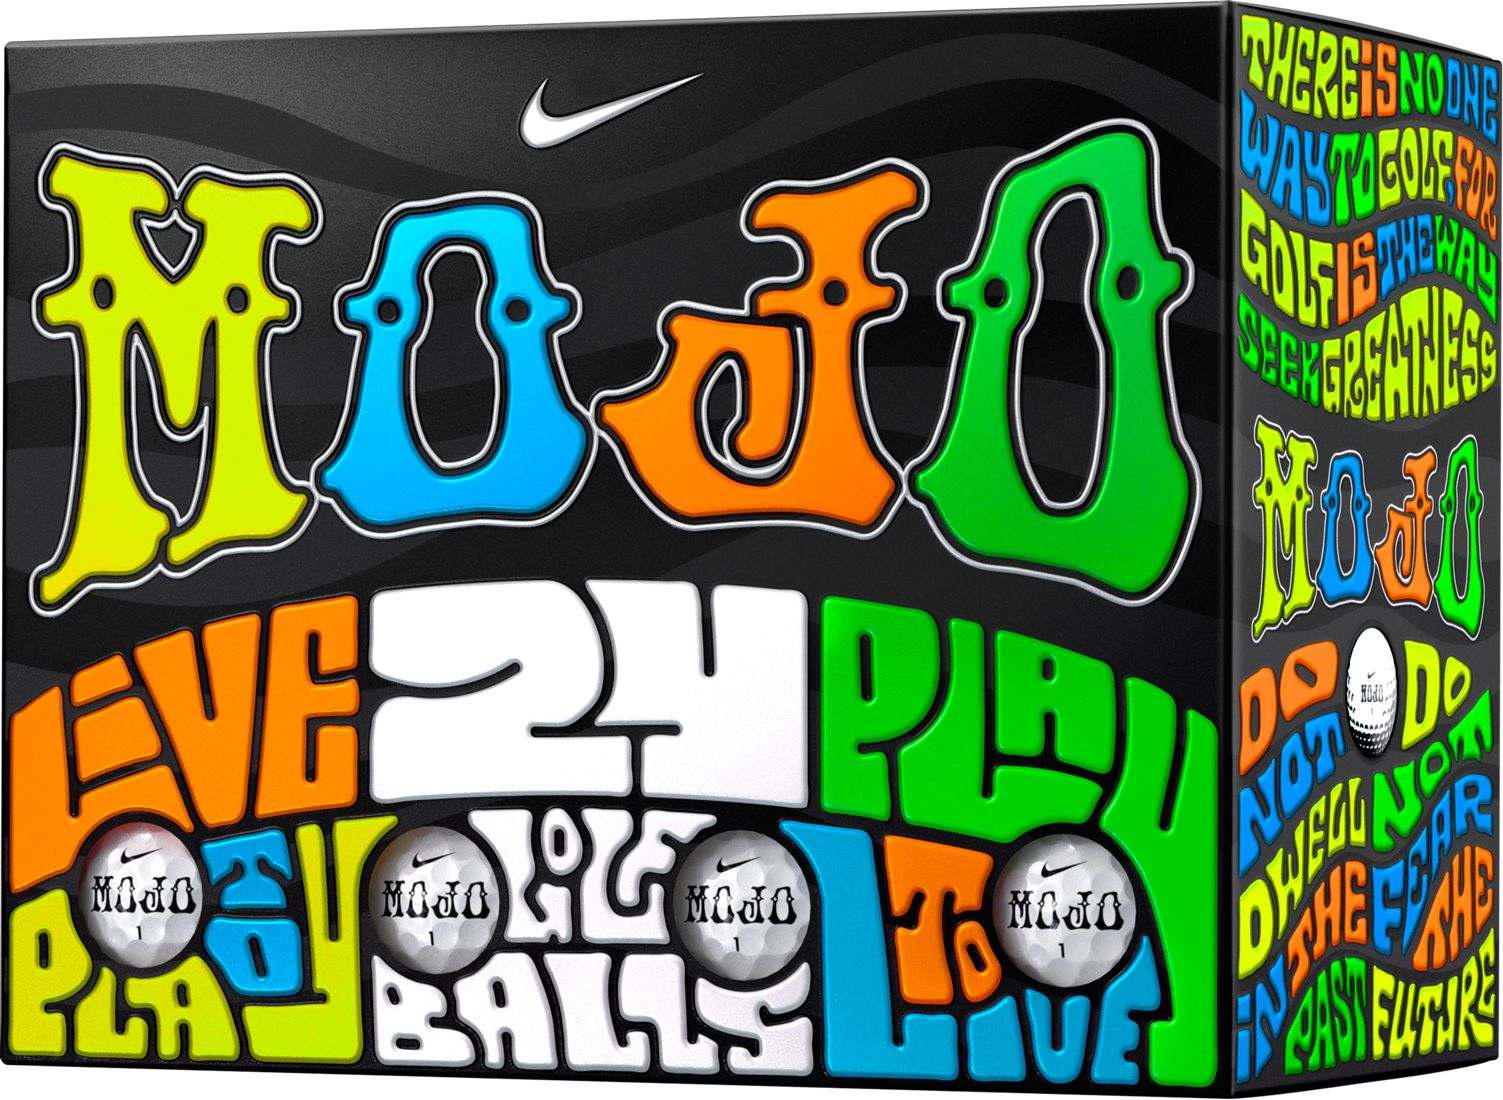 Nike Mojo Golf Balls Review